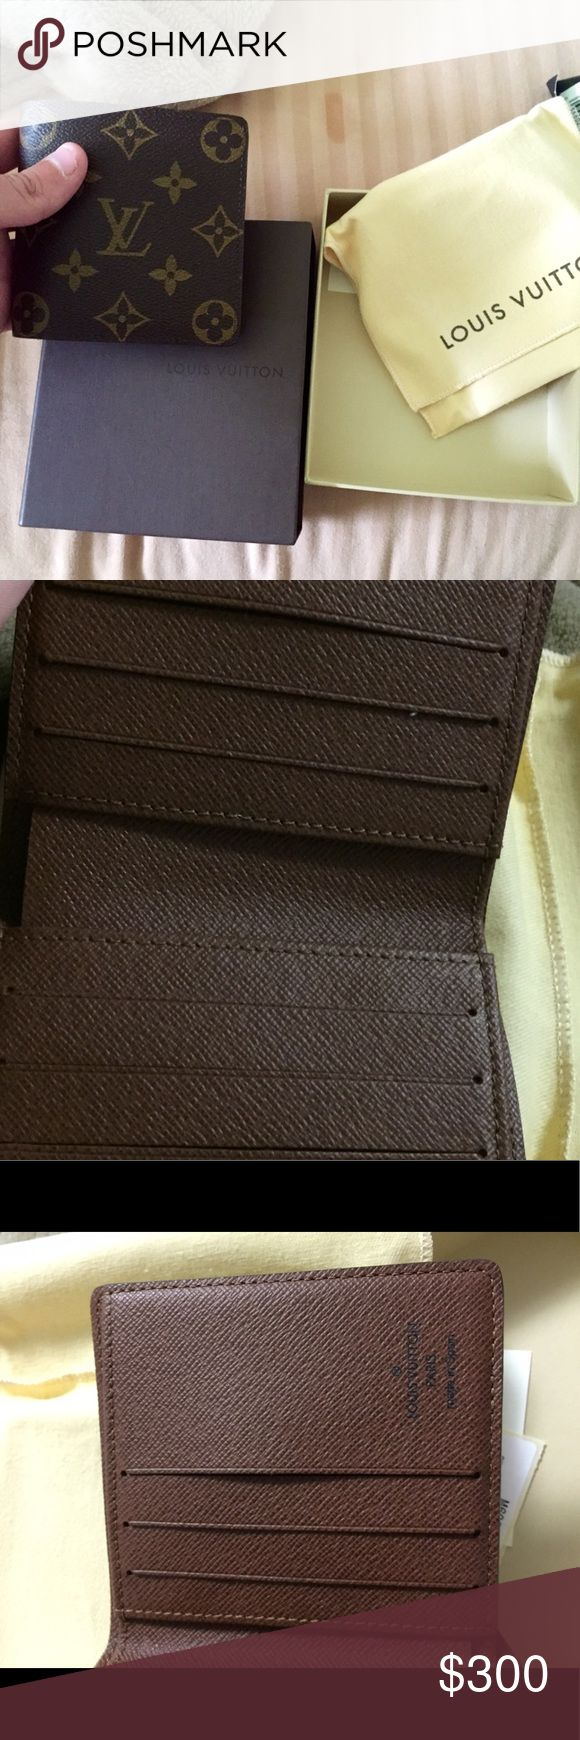 Louis Vuitton men's wallet Brand new never used asking 300 Bags Wallets